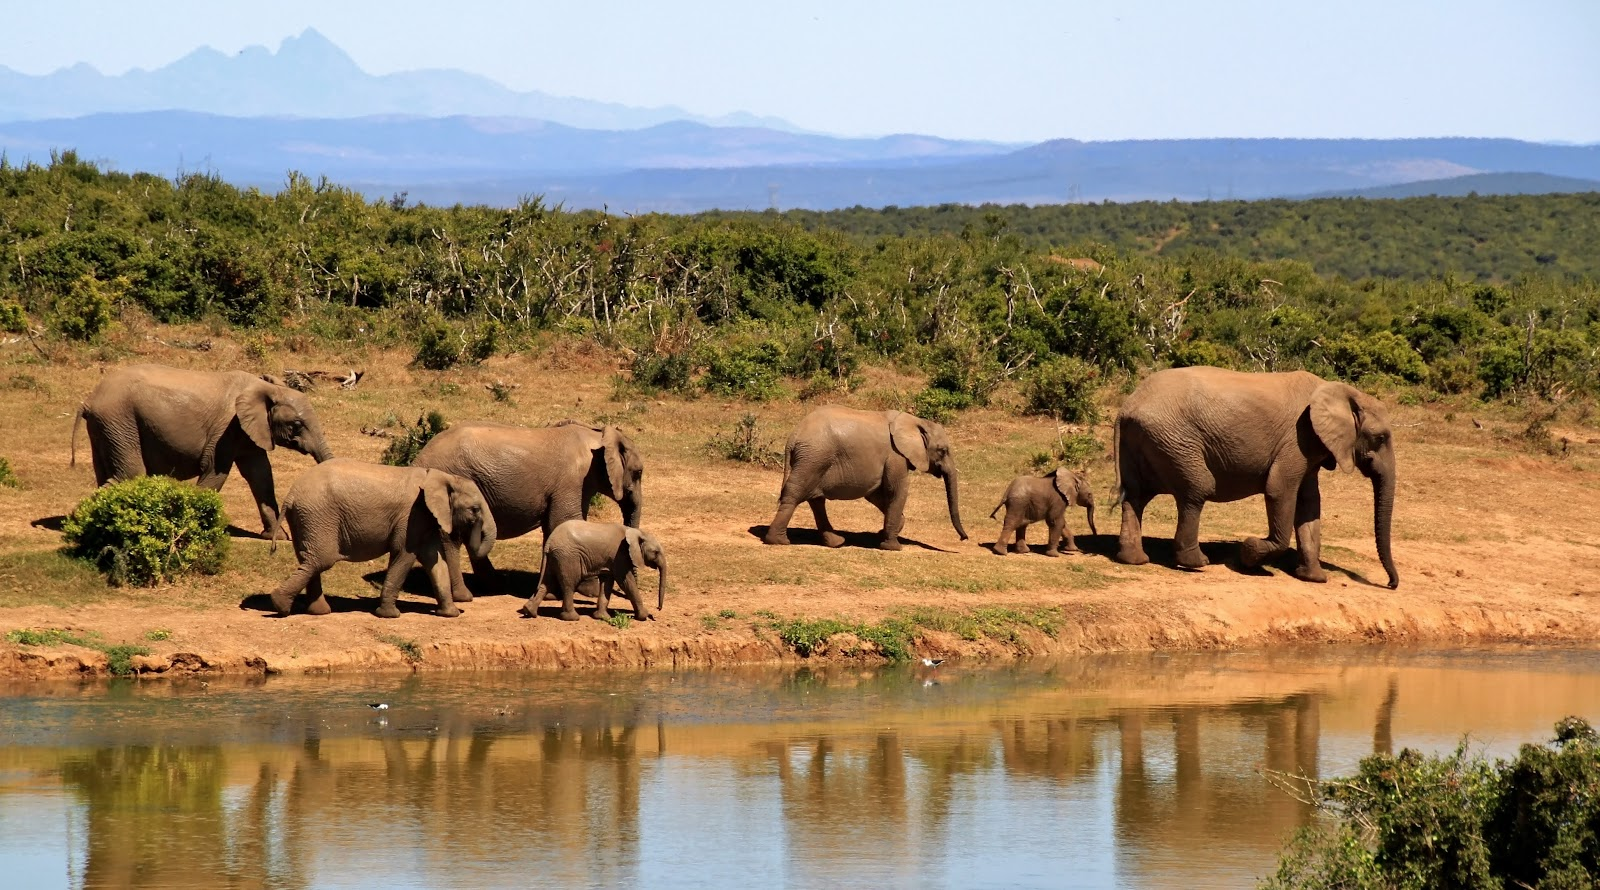 elephant-herd-of-elephants-african-bush-elephant-africa-59989.jpeg